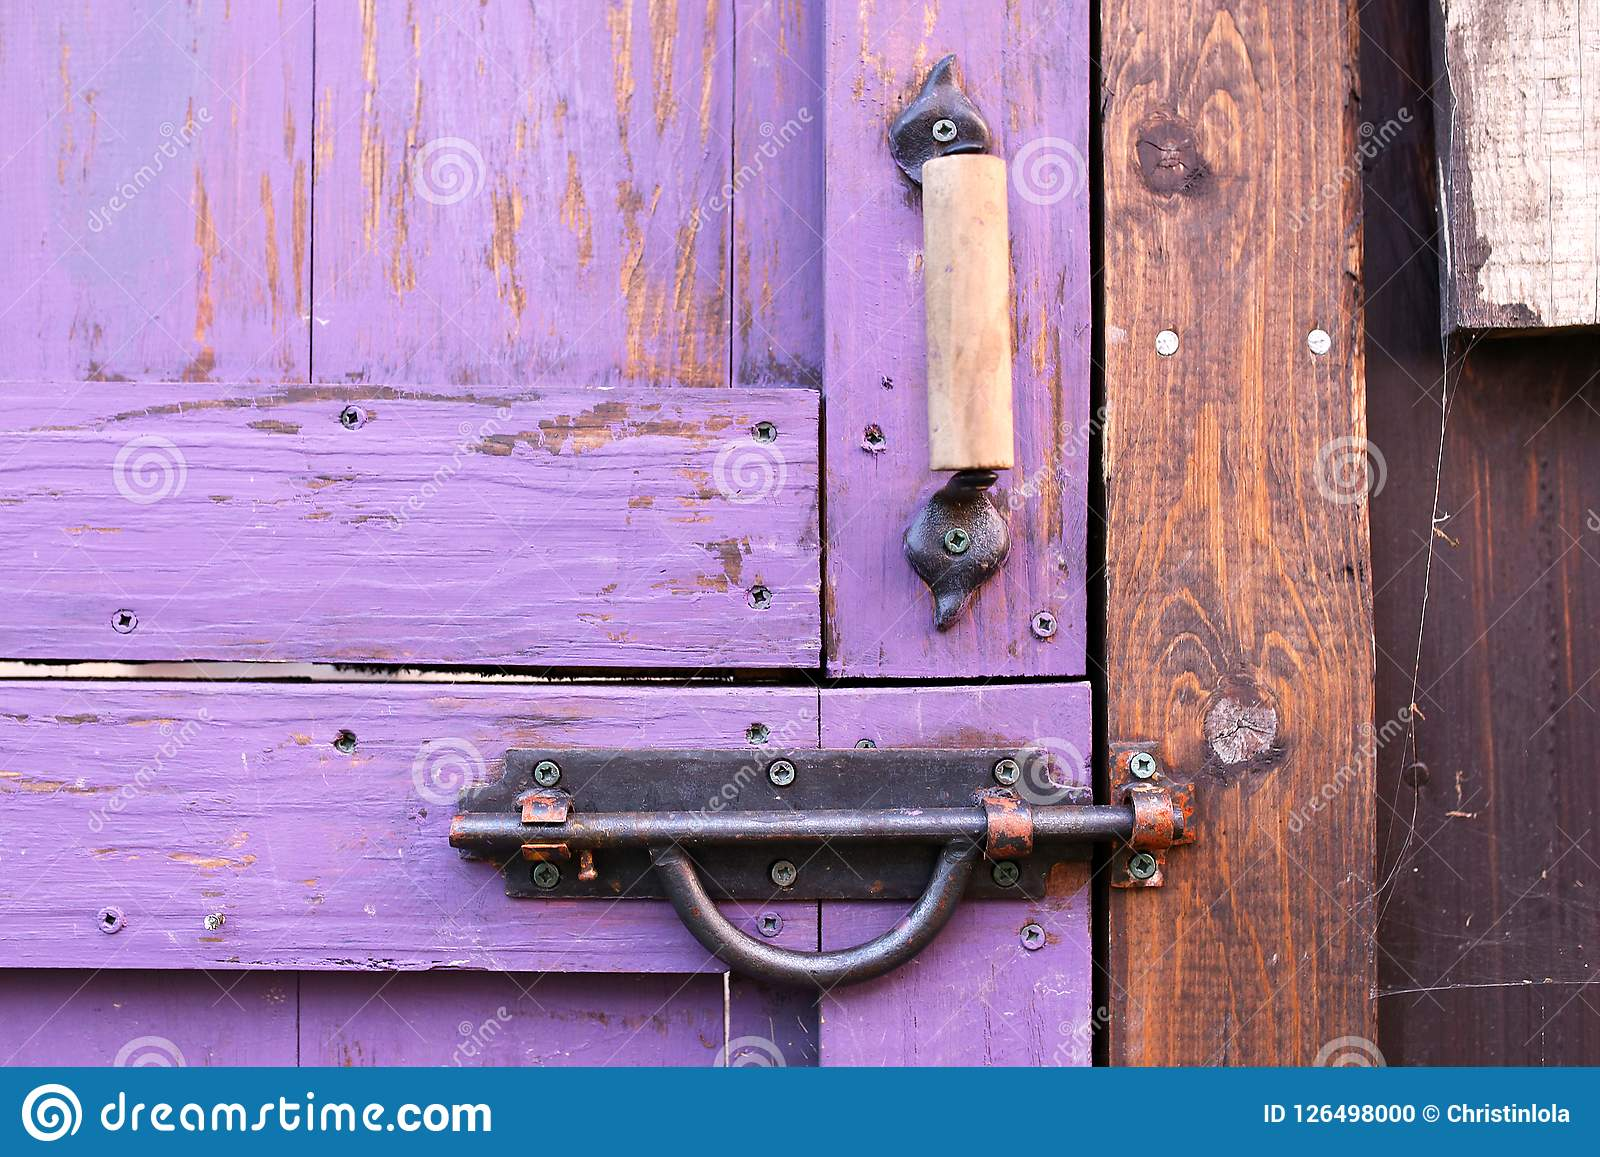 Close Up On The Wooden Handle And Iron Gate Lock On An Old Purple Painted  Spilt Dutch Garden Shed Door.